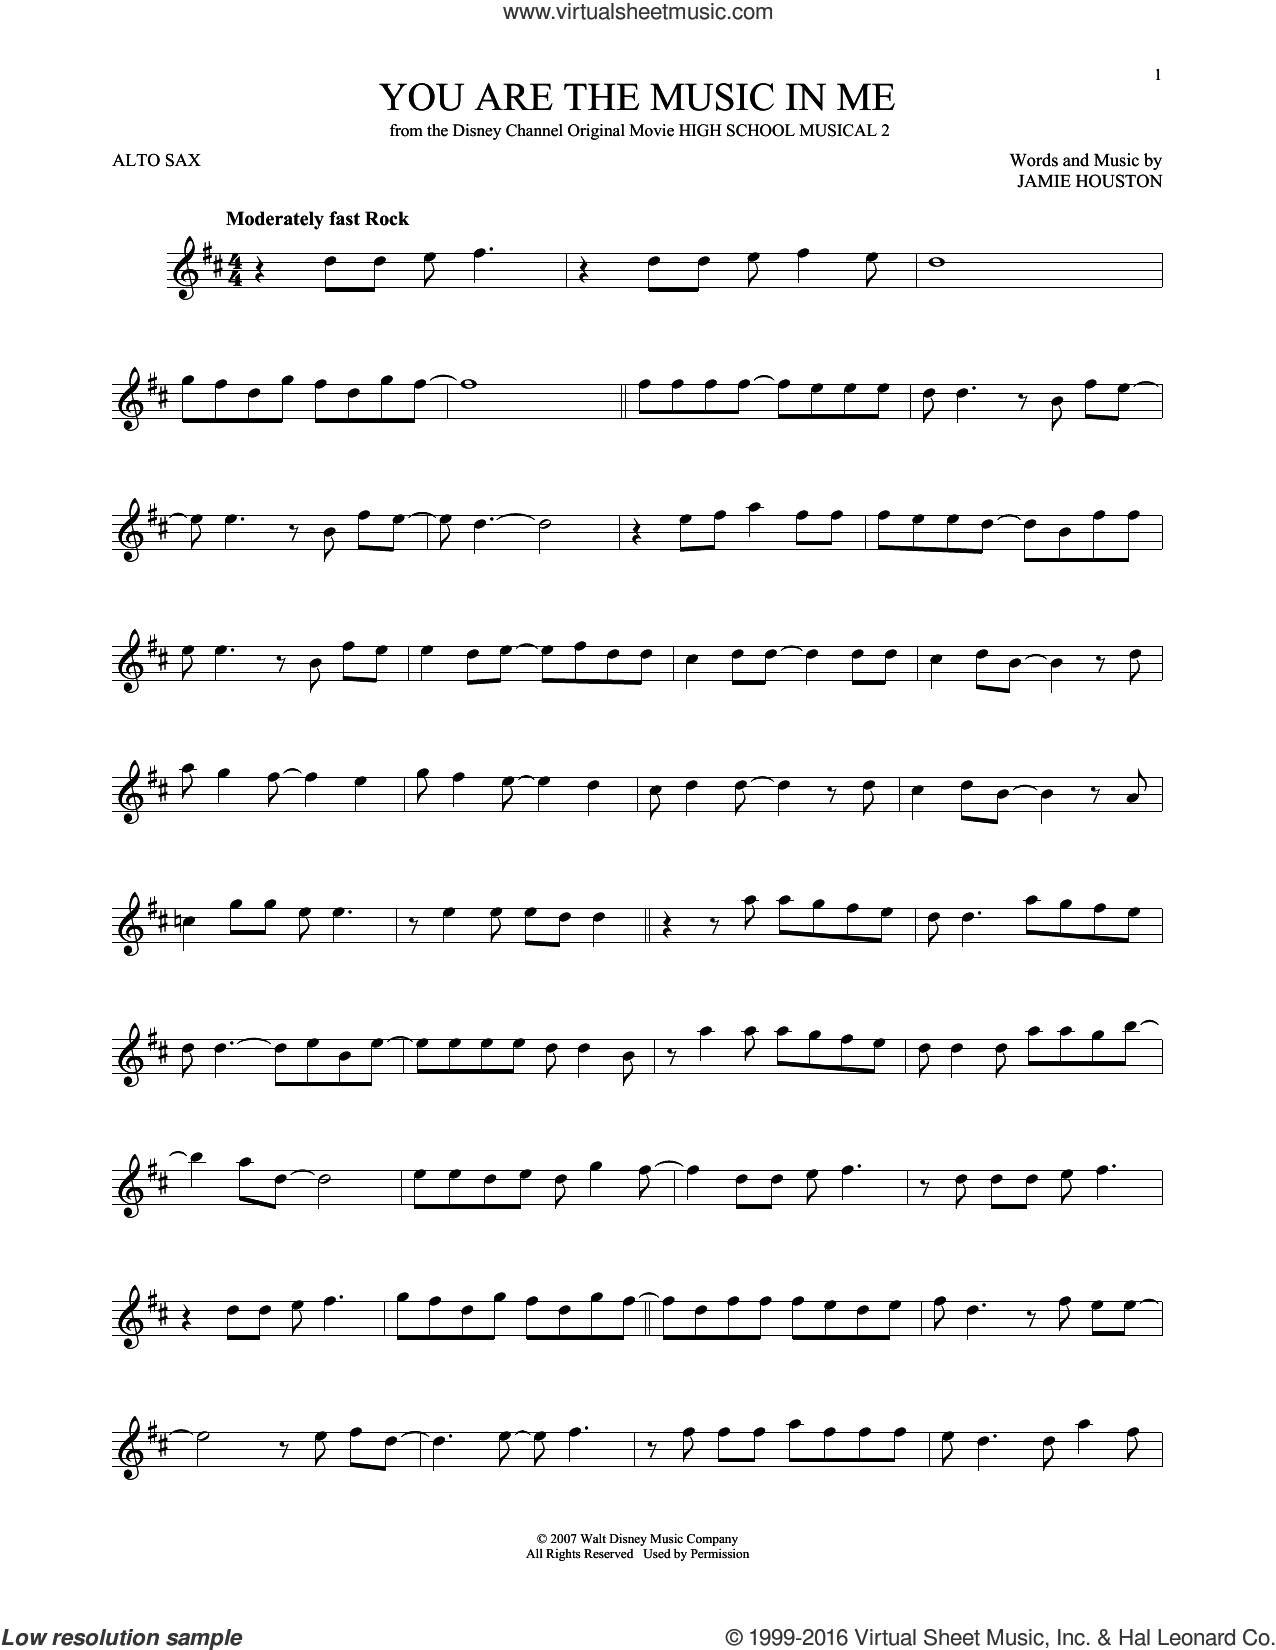 You Are The Music In Me sheet music for alto saxophone solo by Zac Efron and Vanessa Anne Hudgens and Jamie Houston, intermediate skill level